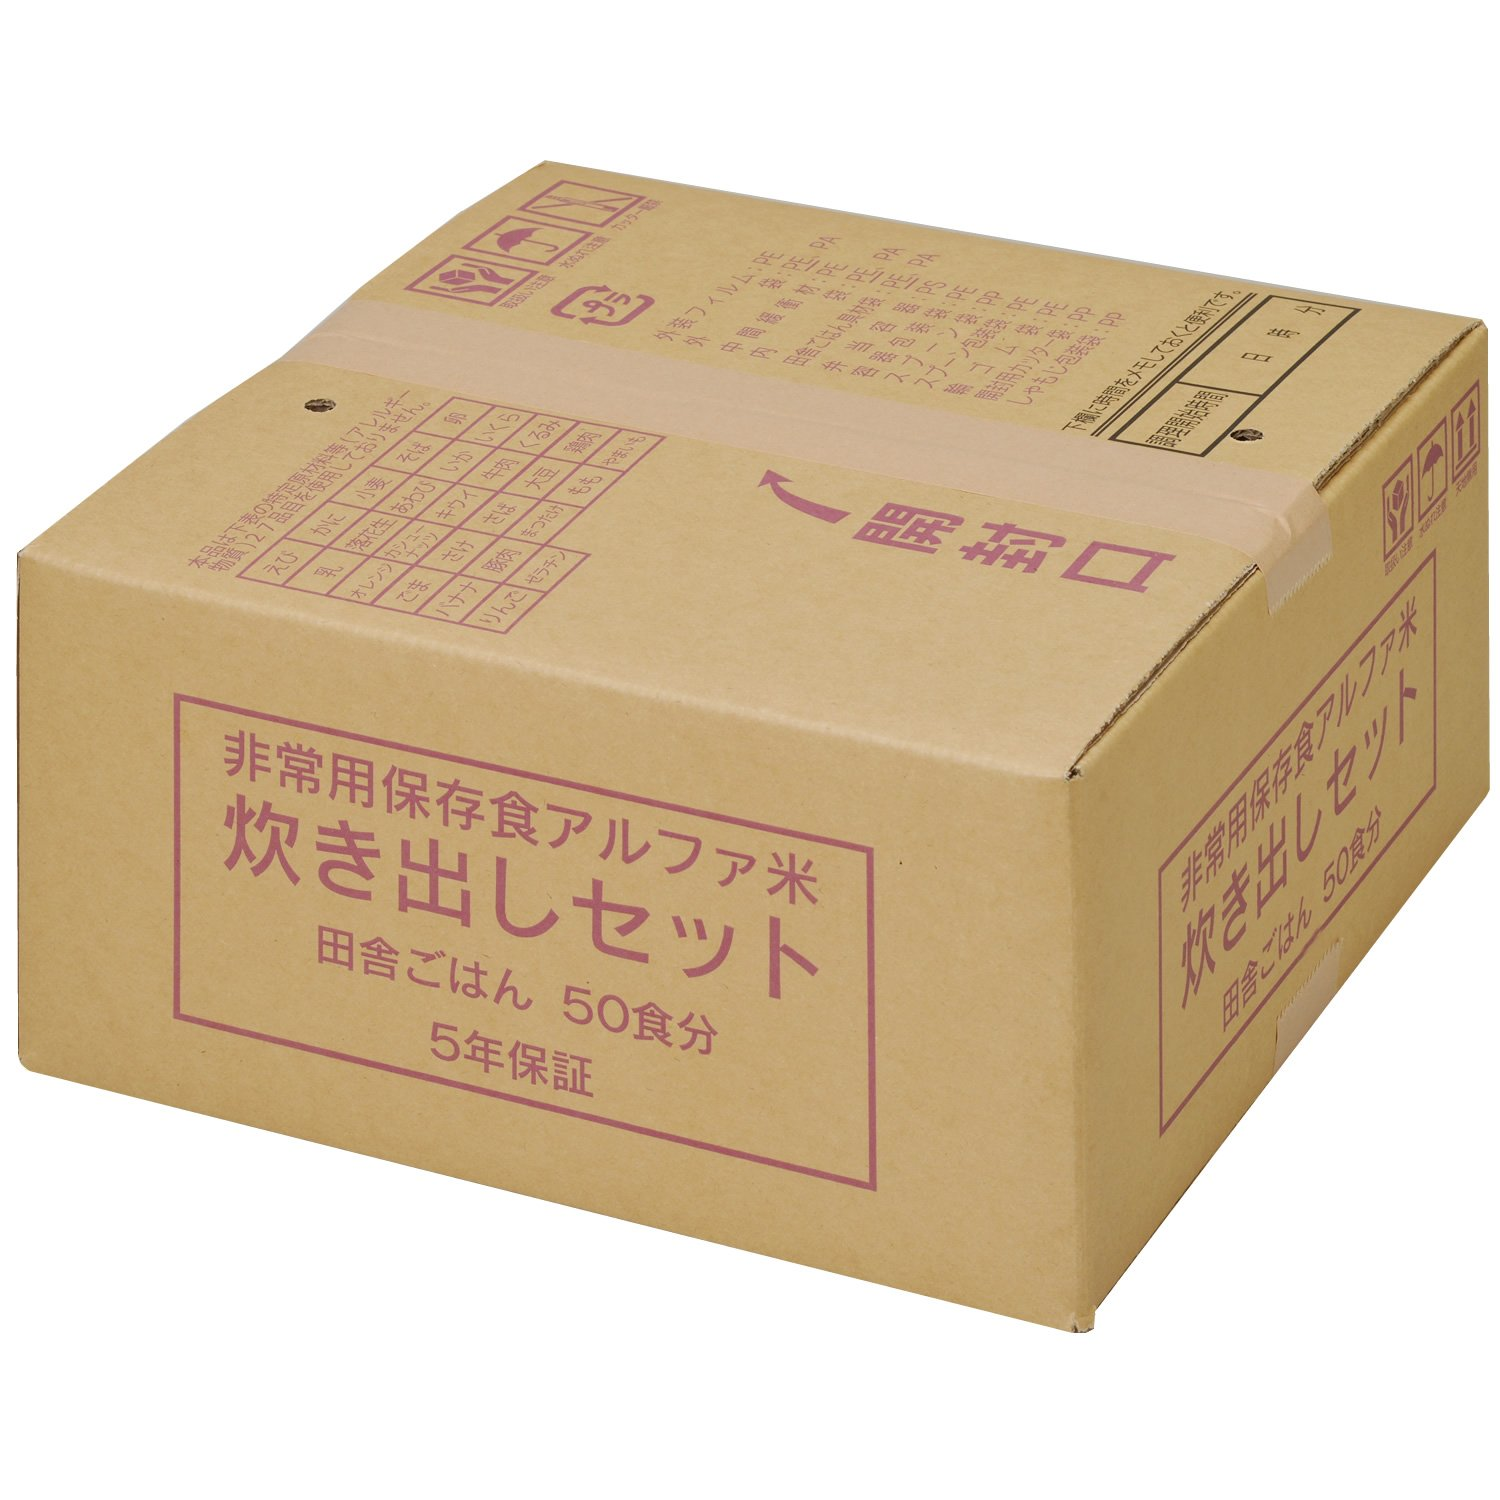 Bisai food alpha rice soup kitchen set the countryside rice 50 servings 6.15‡s